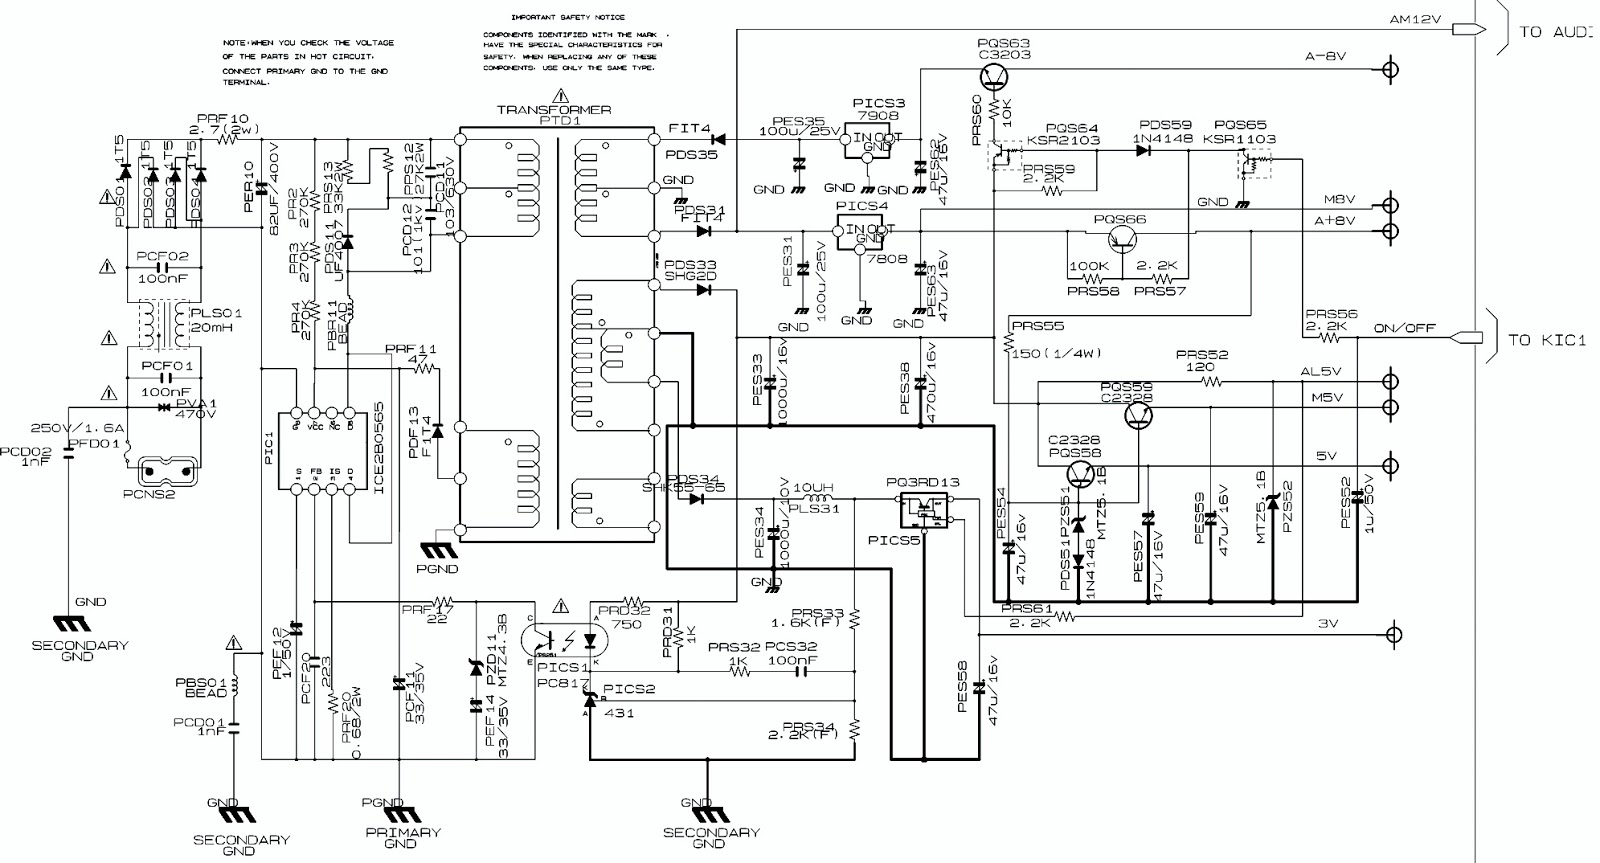 new from this samsung tv schematic diagram circuit diagrams and download service repair manuals and schematic diagrams xmid service manual dvd  [ 1600 x 863 Pixel ]